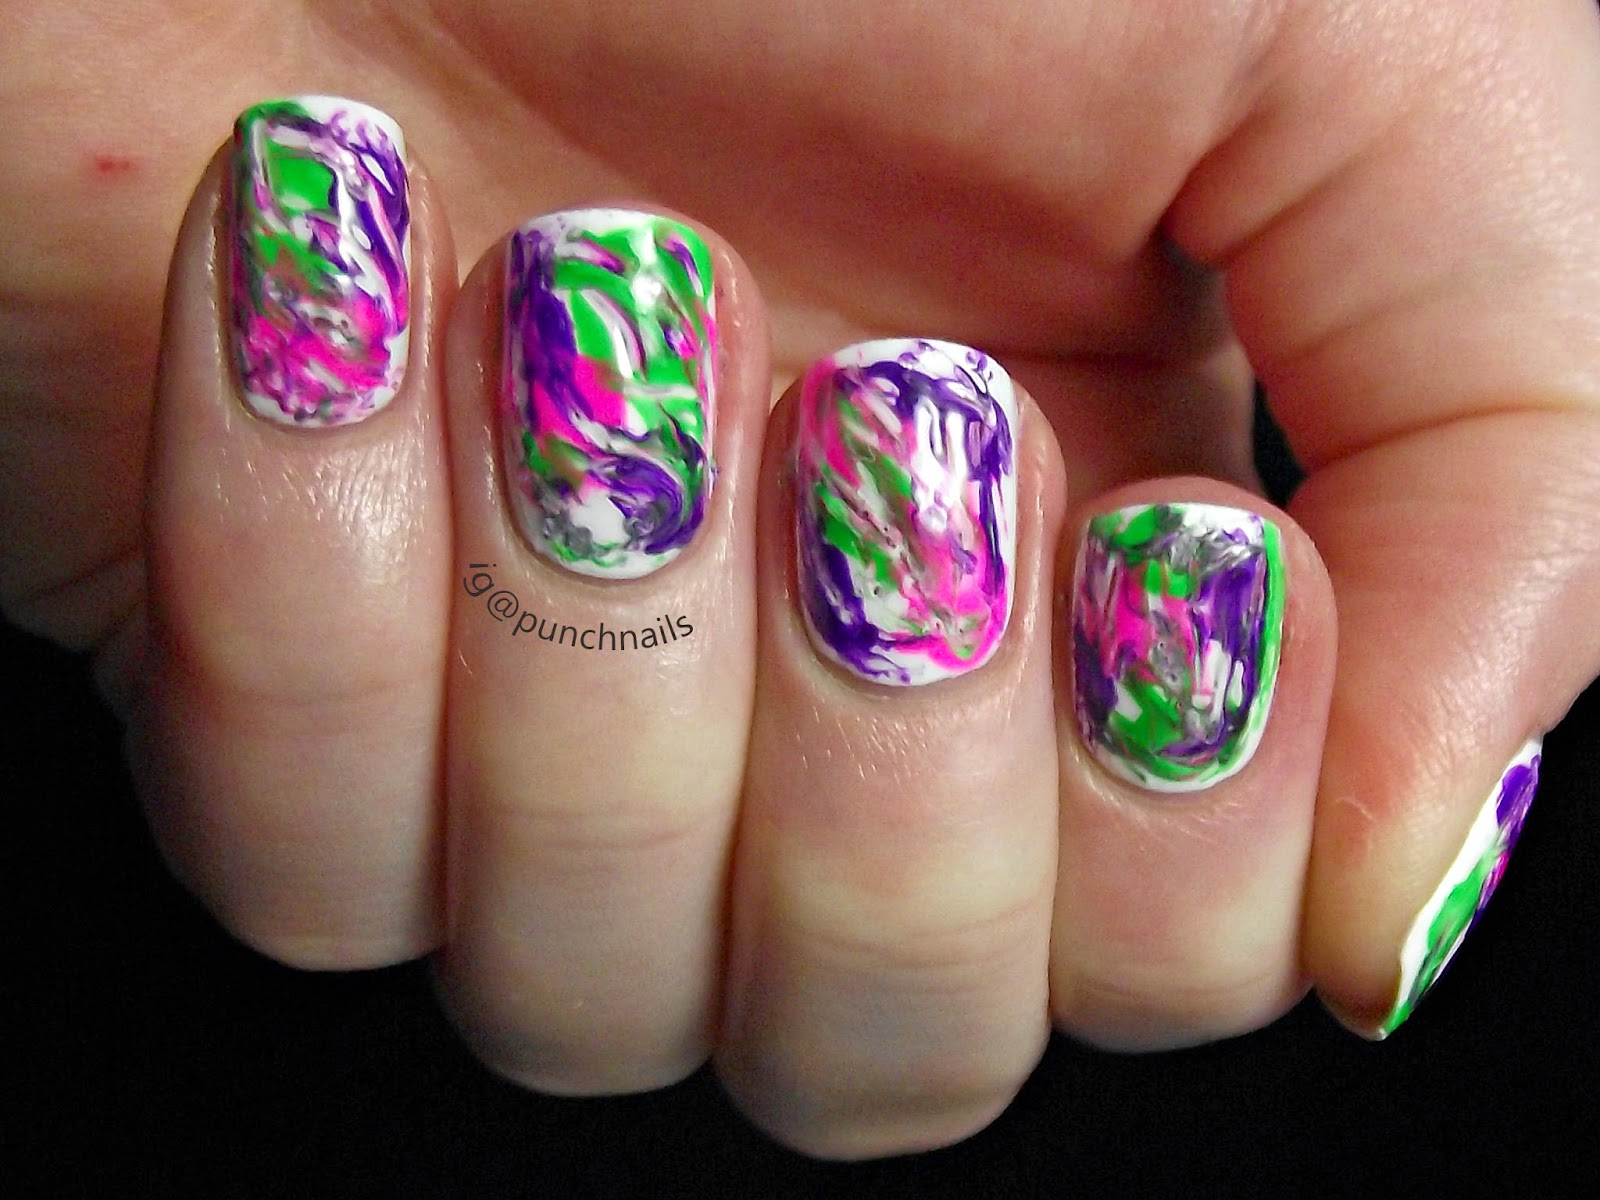 Punch Nails Neon Dry Marble Nail Art